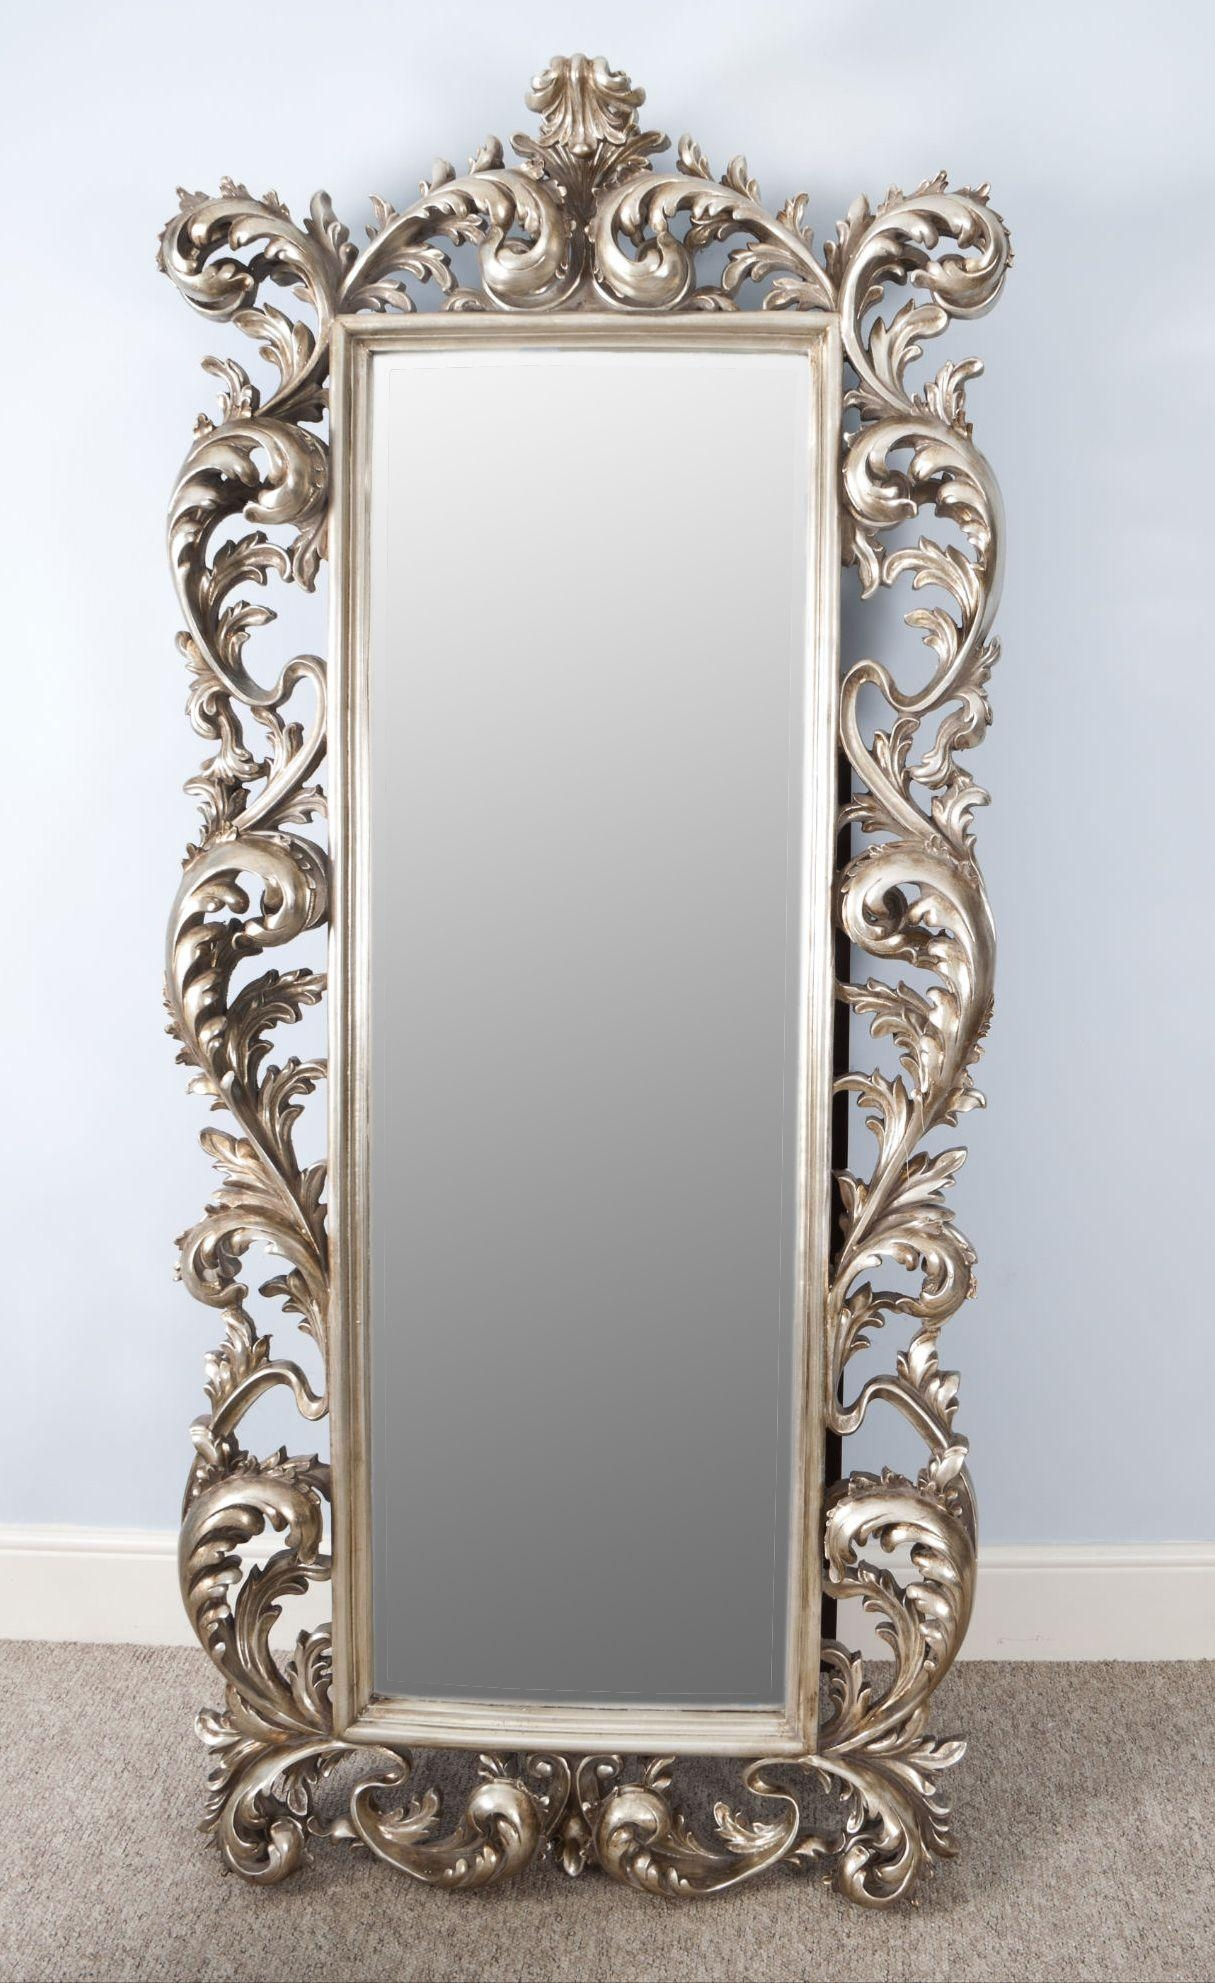 Classic Impression On Antique Wall Mirrors | Vwho Regarding Reproduction Antique Mirrors For Sale (Image 18 of 20)